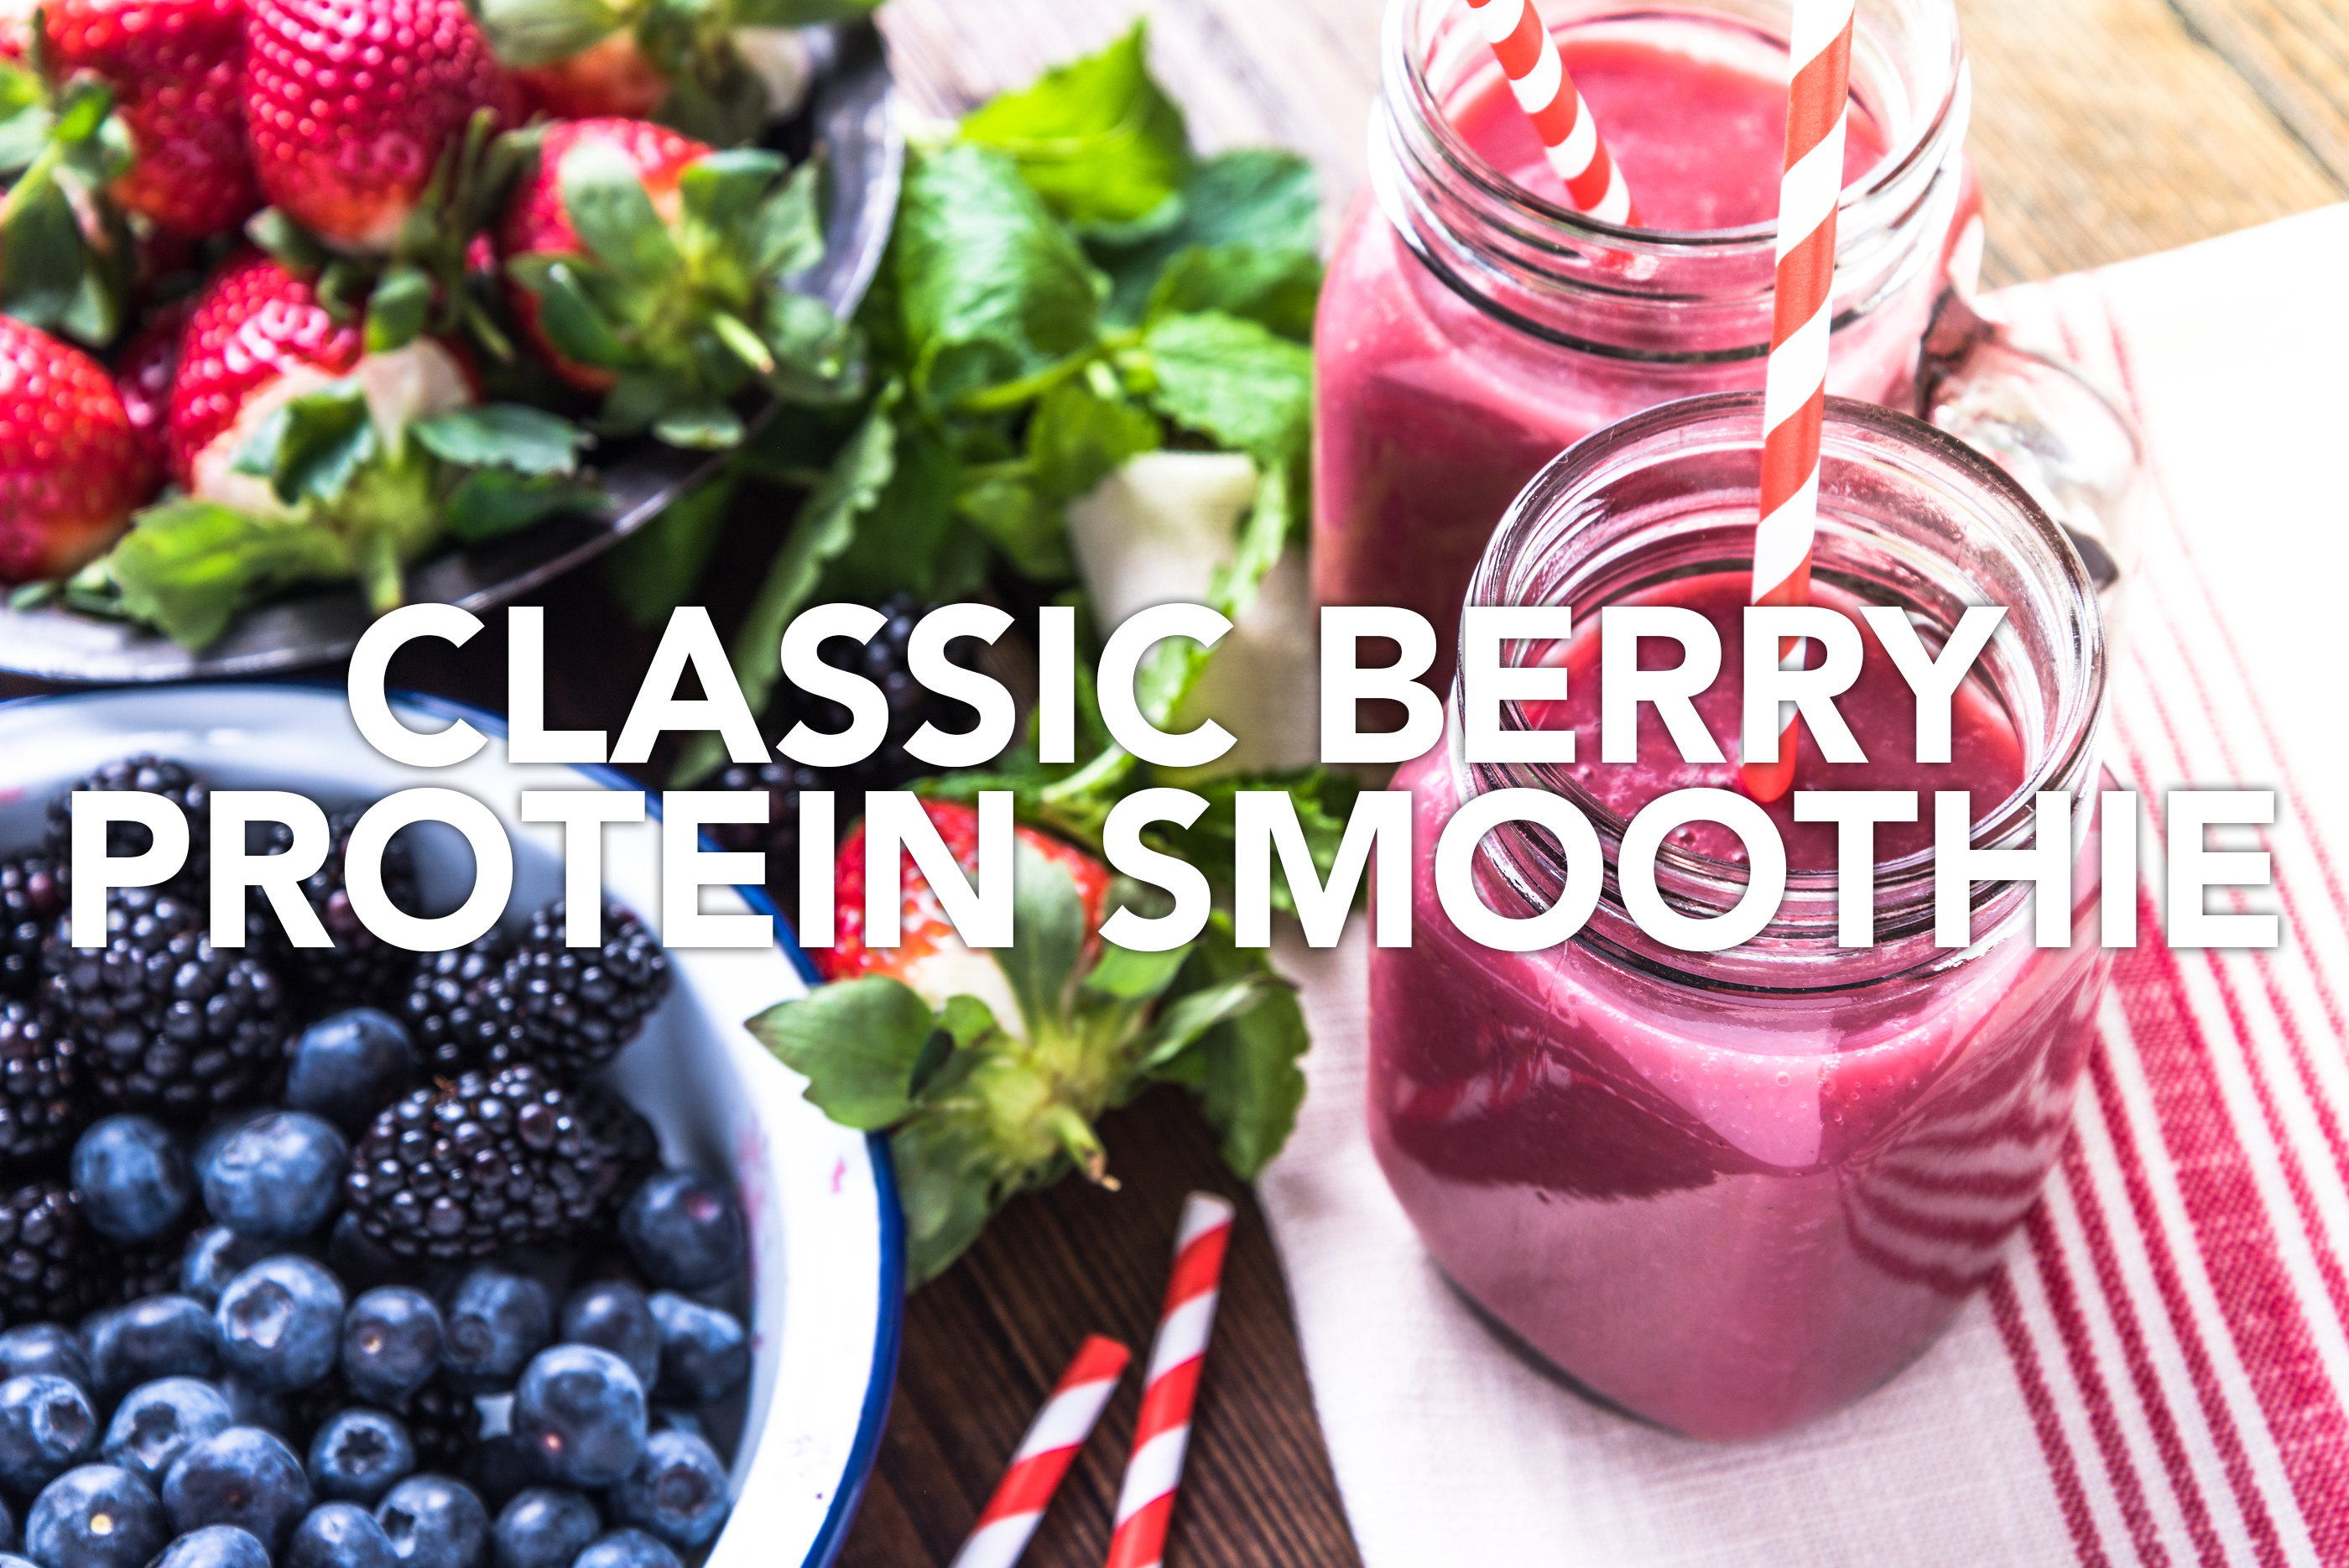 Classic Berry Protein Smoothie